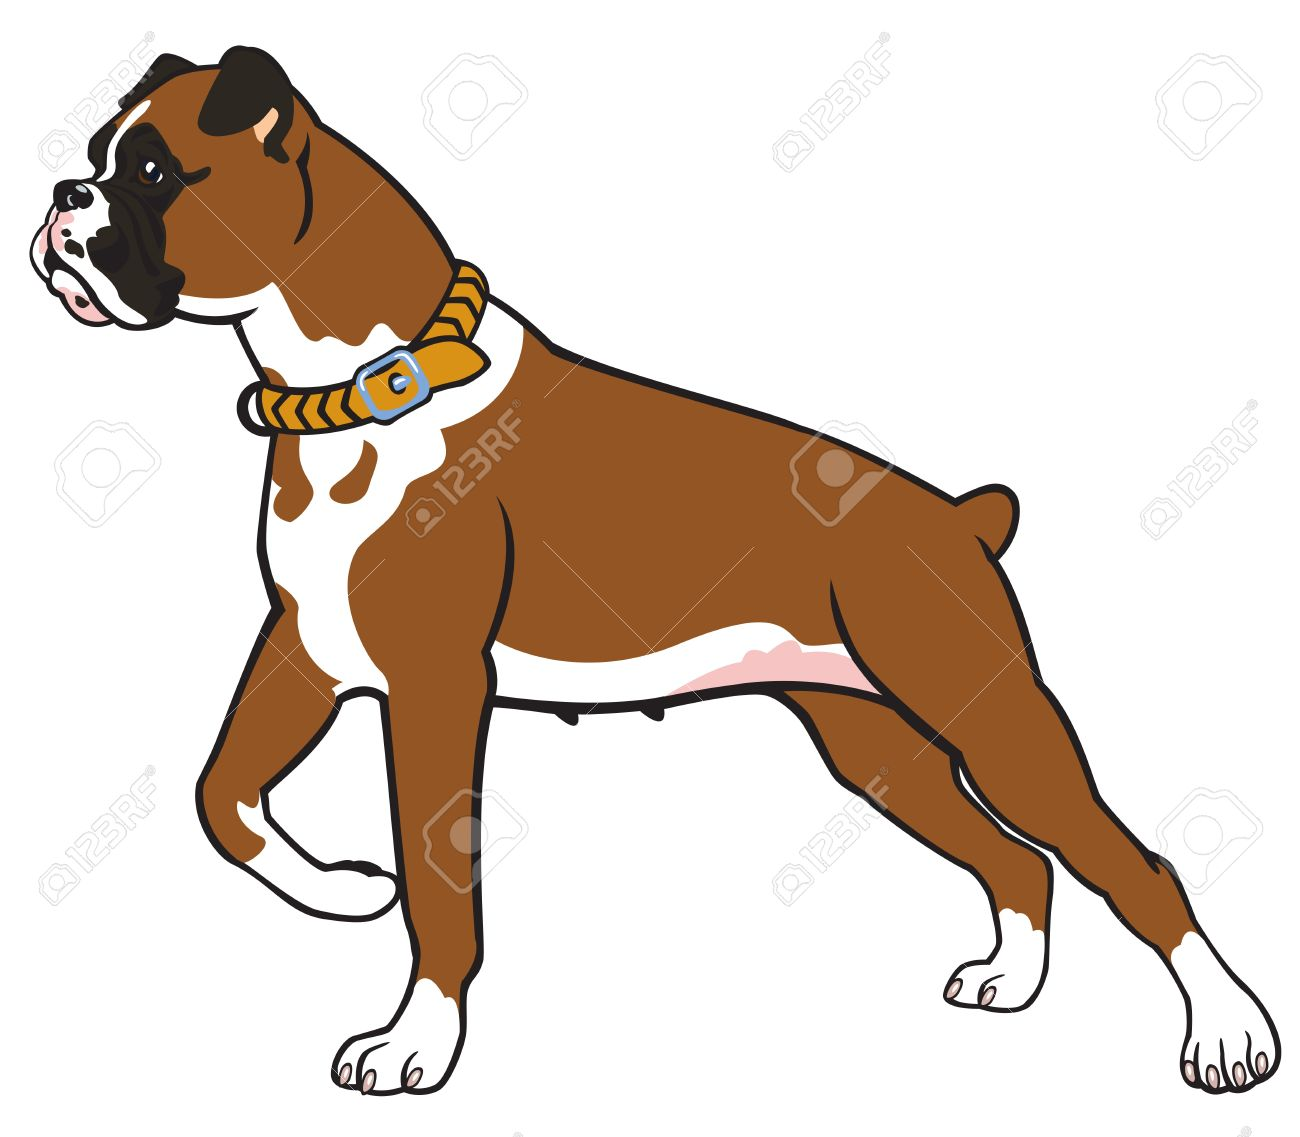 3 040 boxer dog stock vector illustration and royalty free boxer dog rh 123rf com Boxer Dog Outline Boxer Dog Silhouette Clip Art